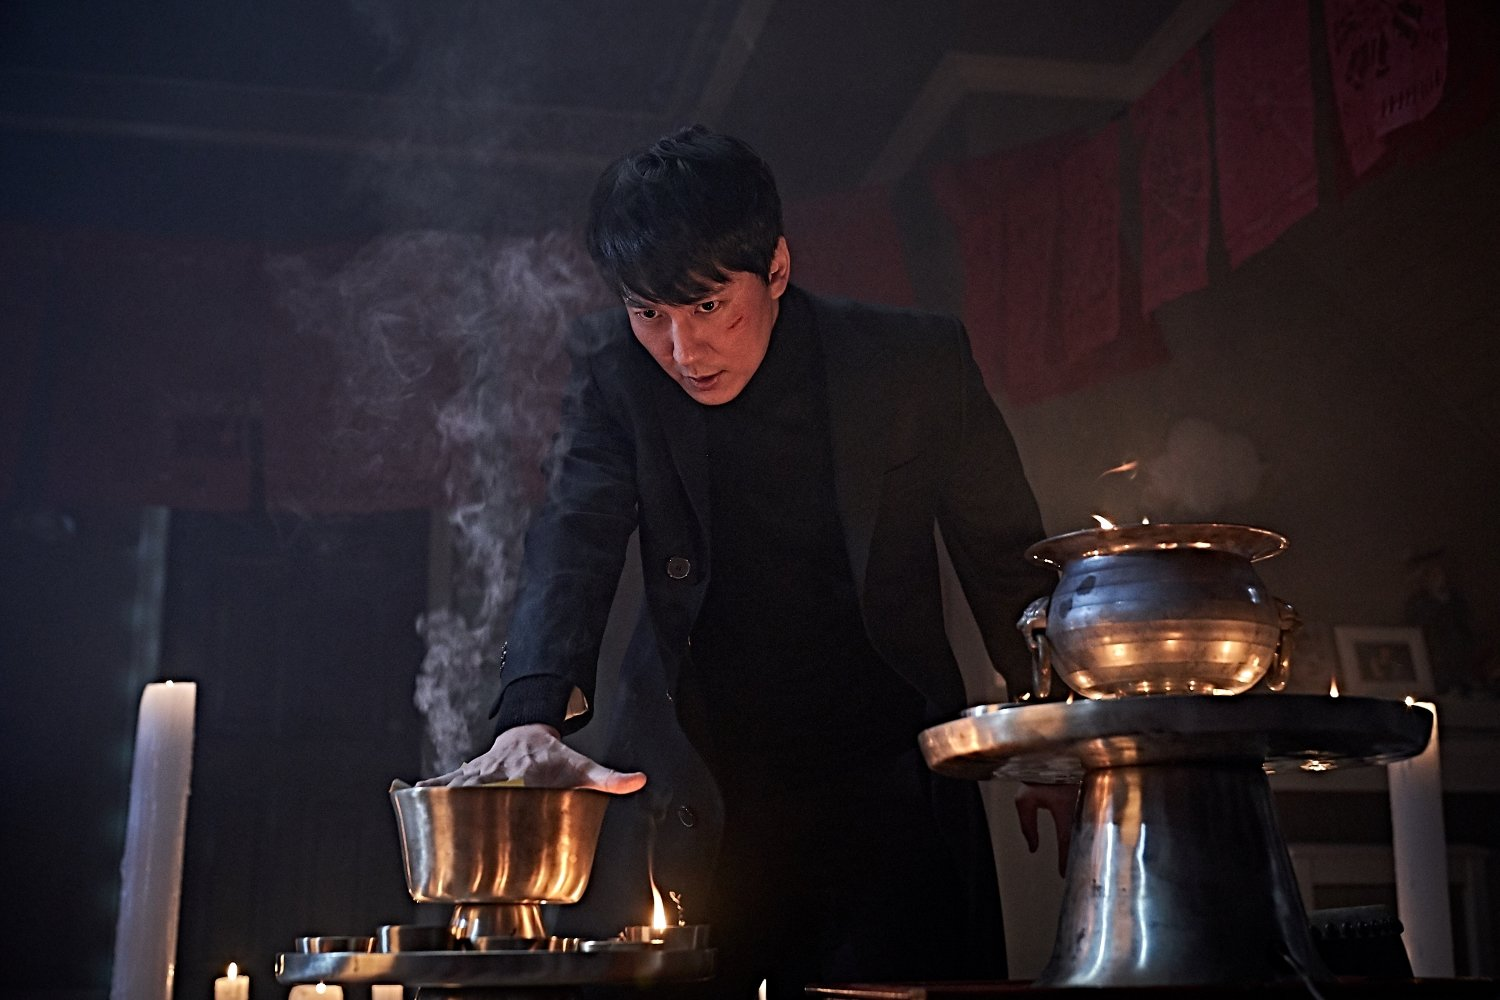 K-Movie] Ha Jung-woo and Kim Nam-gil Heighten Tension in New Horror Film 'The Closet' - HallyuSG